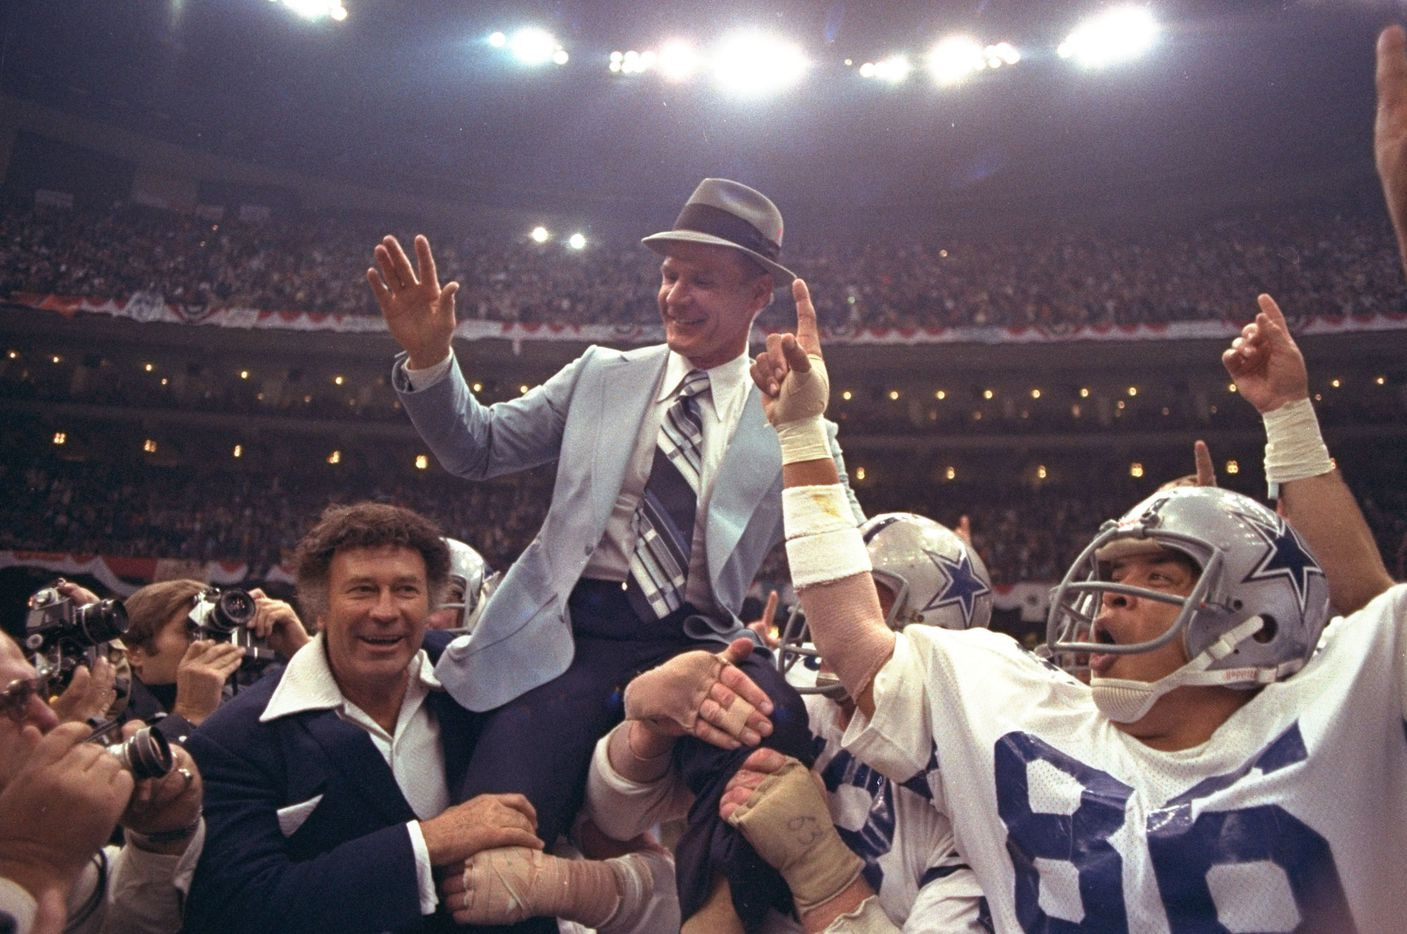 Dallas Cowboys head coach Tom Landry is given a victory ride on the shoulders of his players after the Cowboys defeated the Denver Broncos 27-10 in Super Bowl XII at the New Orleans, Louisiana Super Dome, on Jan. 15, 1978.